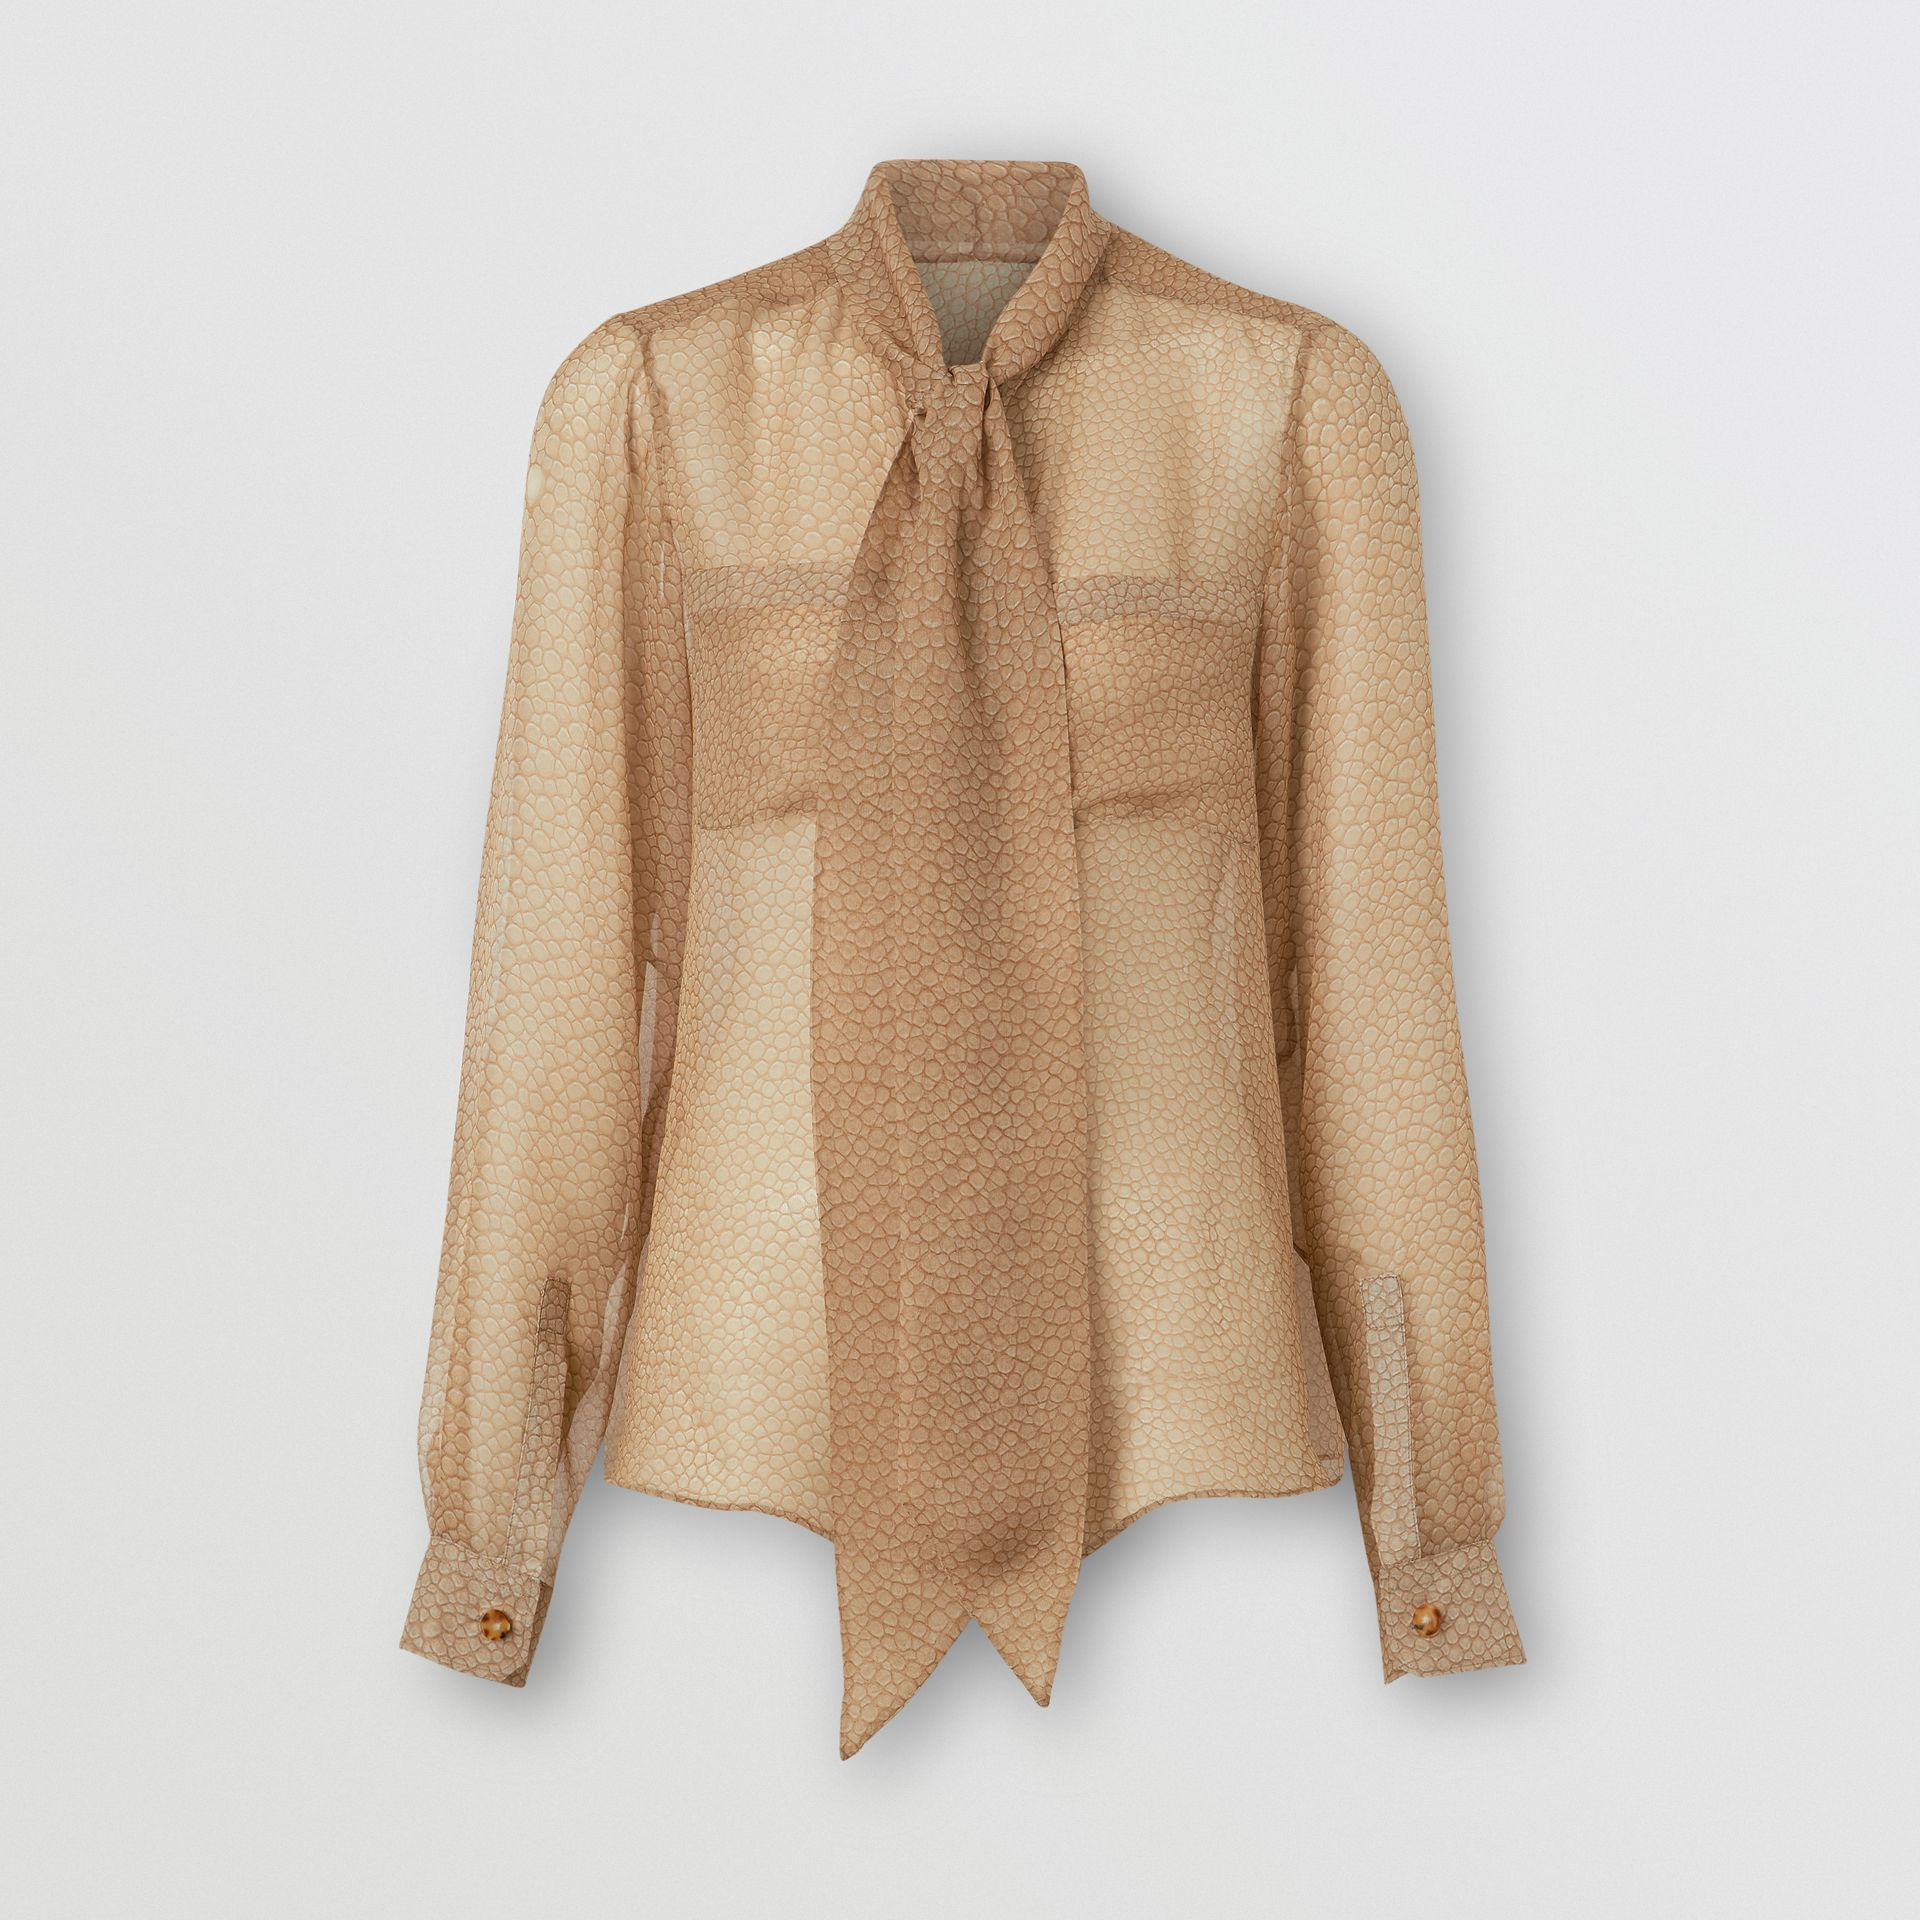 Fish-scale Print Silk Oversized Pussy-bow Blouse in Light Sand - Women | Burberry - gallery image 3